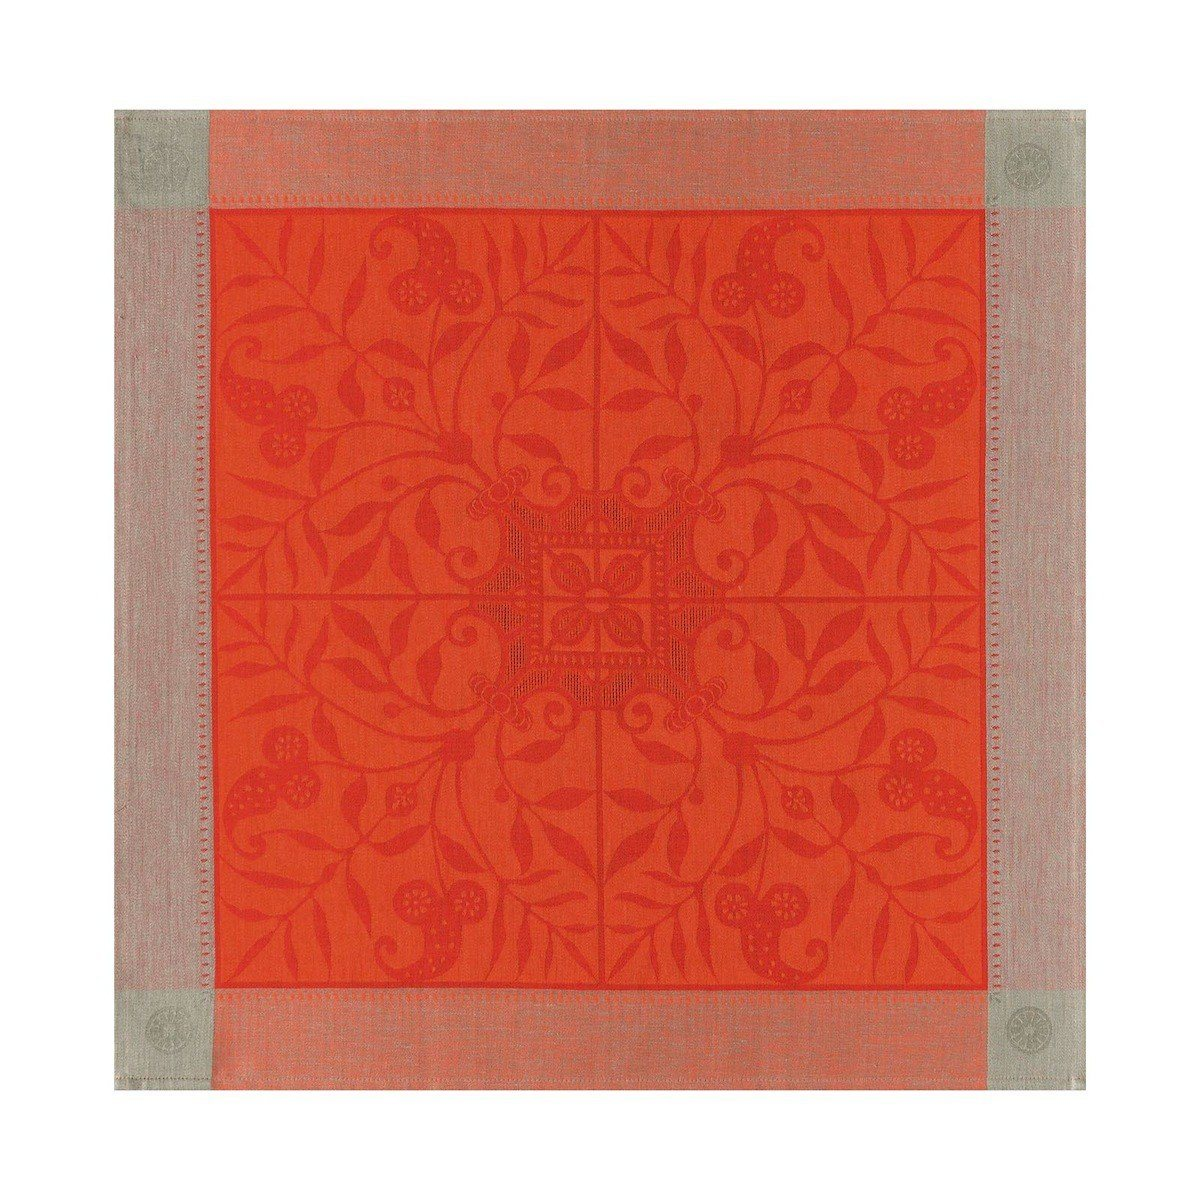 Le Jacquard Français Table Linen Venezia in Cornelian Fig Linens Orange napkin